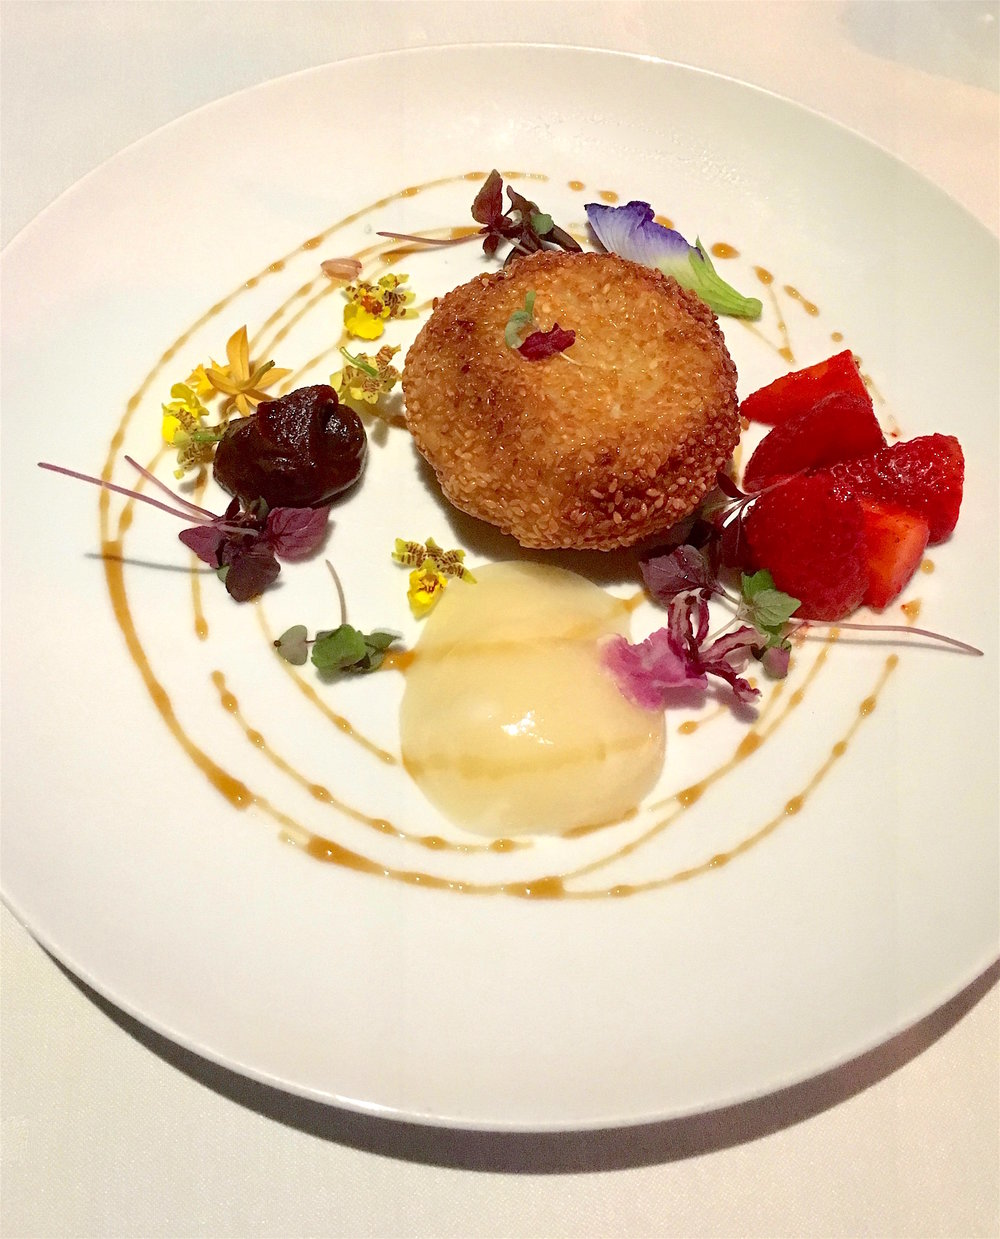 Sesame-encrusted island goat cheese with Waimea strawberries and edible flowers enjoyed {immensely} while partaking in the below view at CanoeHouse...{more below}